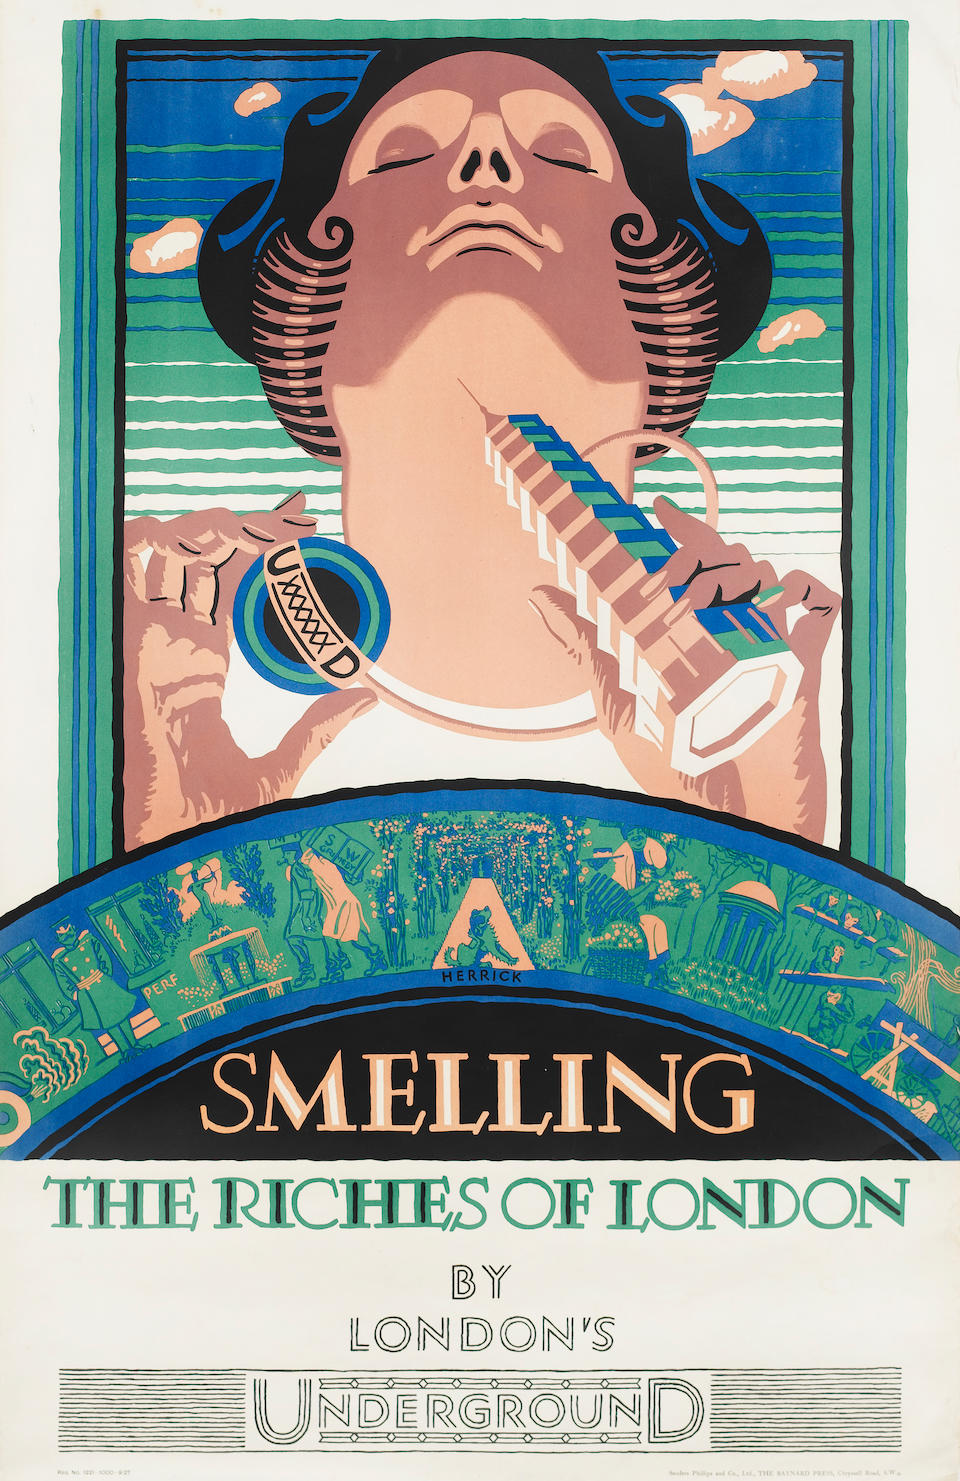 Frederick C. Herrick (British, 1887-1970) Smelling, Seeing, Hearing, Touching and Tasting the Riches of London 1927, the set of five posters, printed by Sanders Phillips and Co., Ltd., The Baynard Press, London; 1015 x 633mm (39 7/8 x 24 7/8in)(SH)(condition A/B) 5